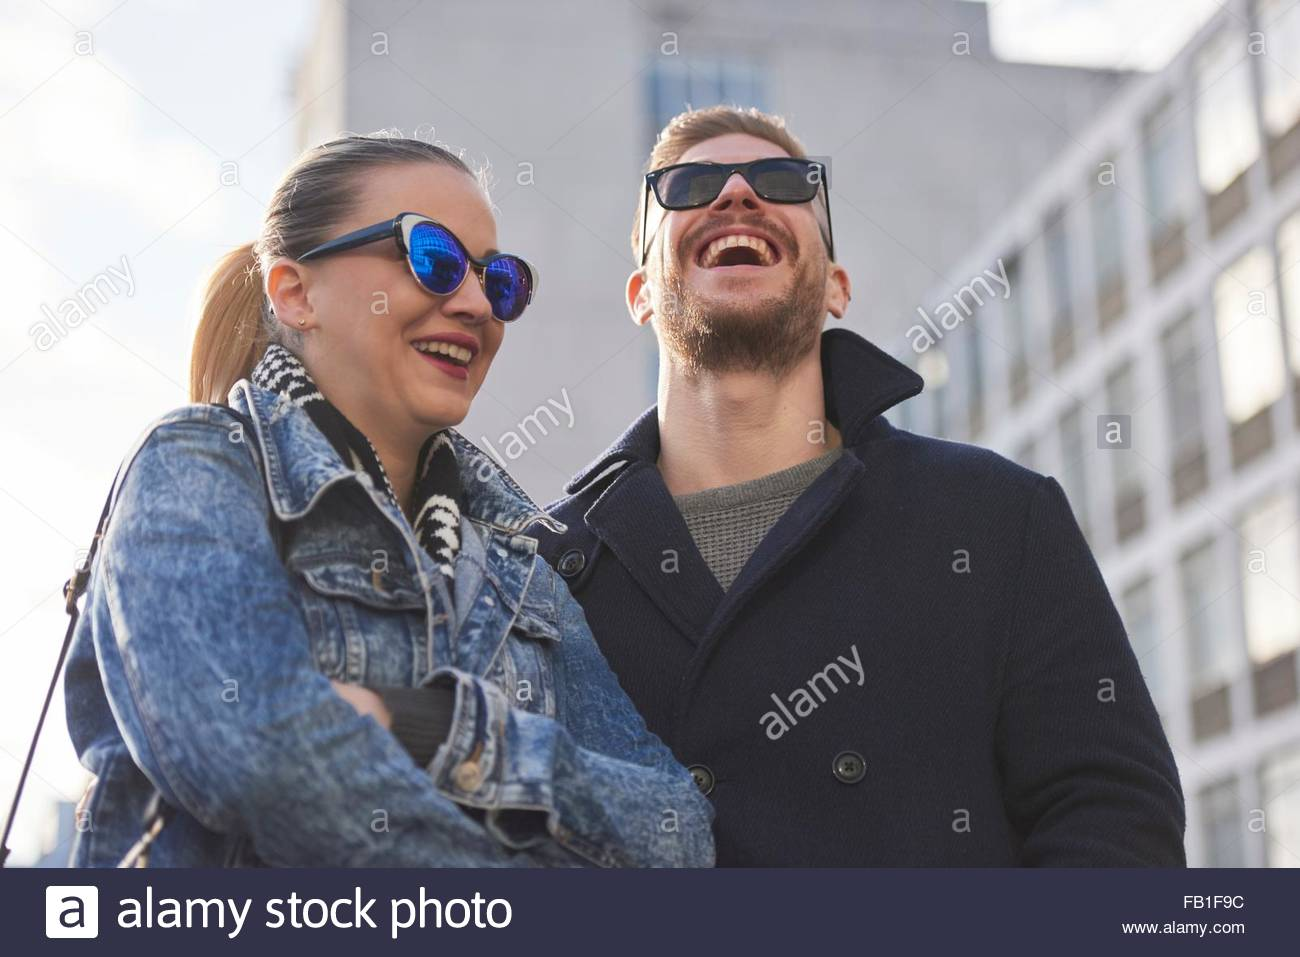 Young couple wearing sunglasses and warm clothing, outdoors - Stock Image